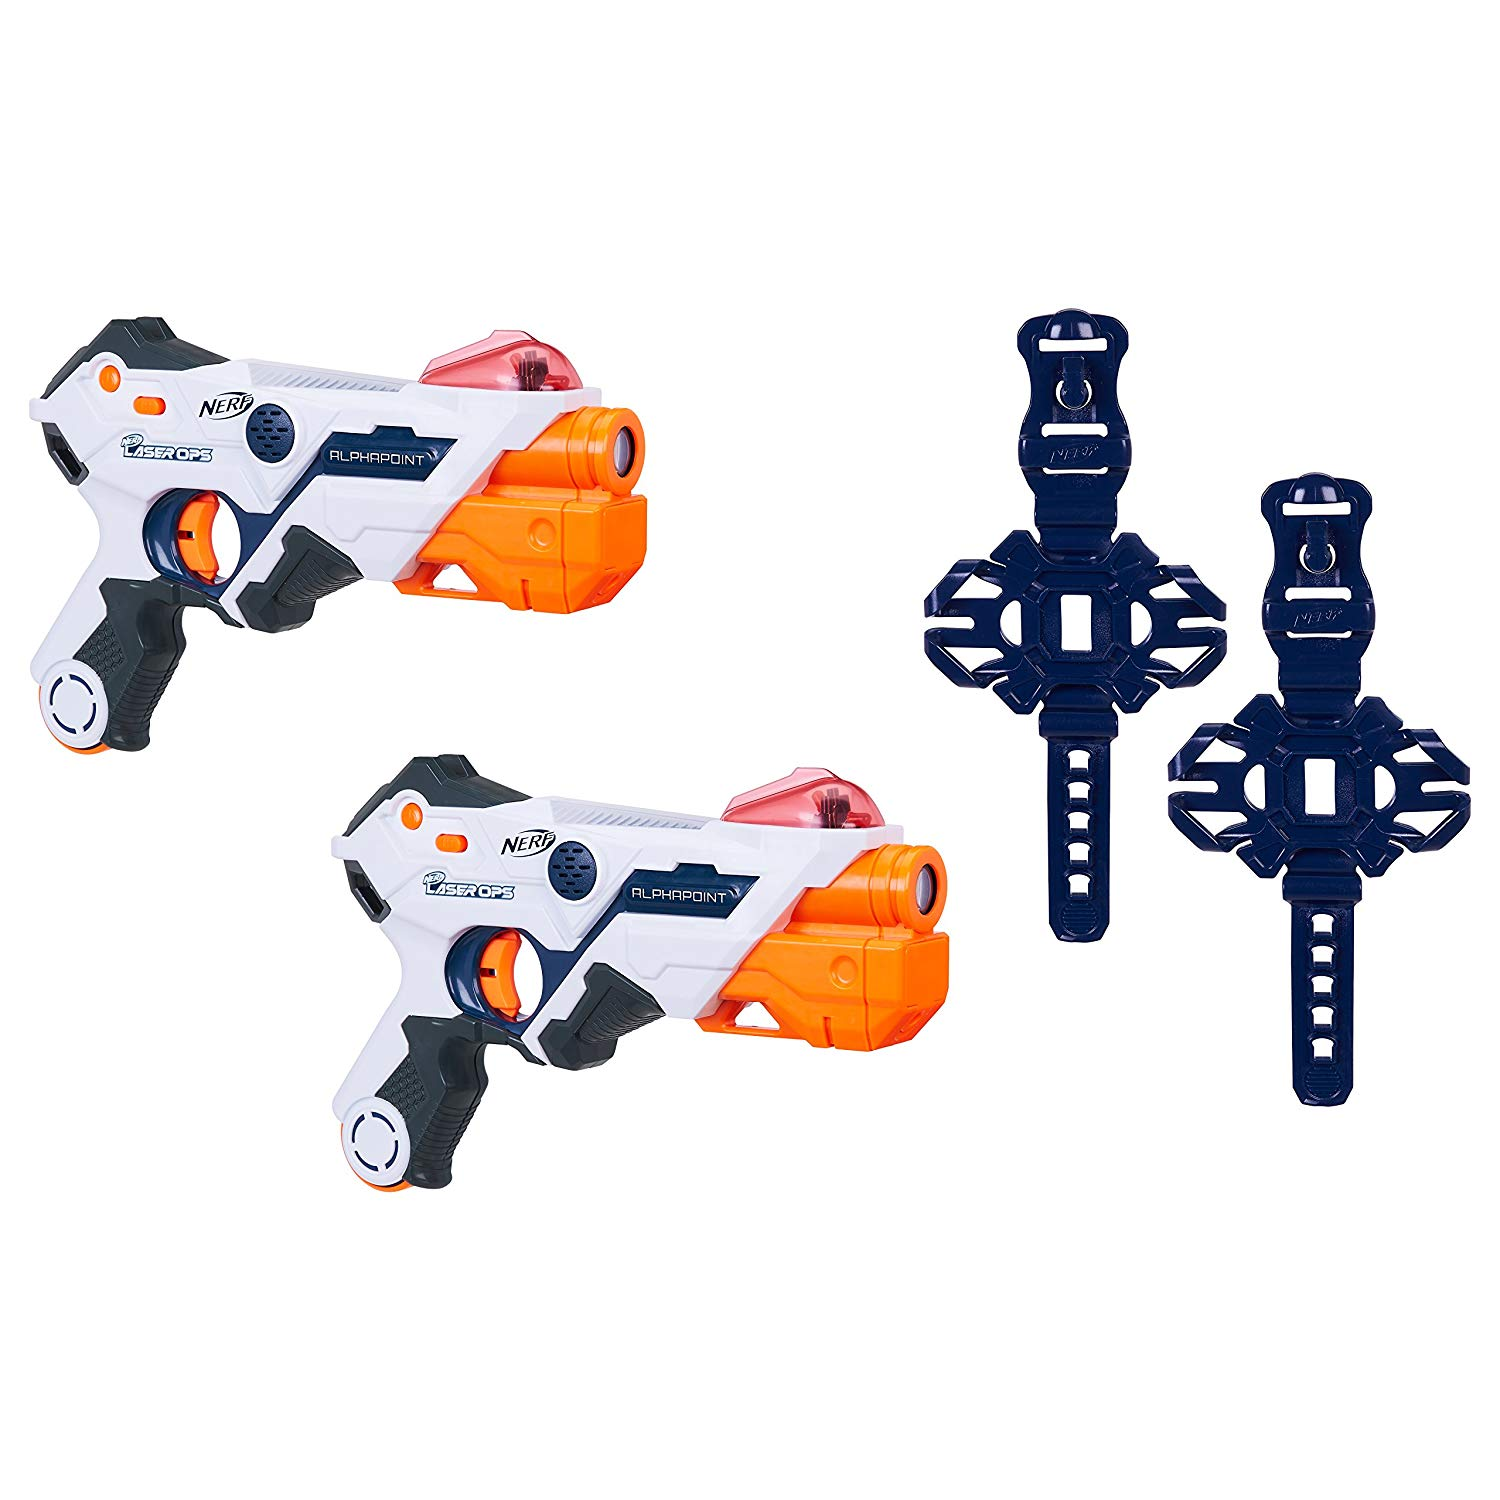 Nerf Laser Tag Set amazon